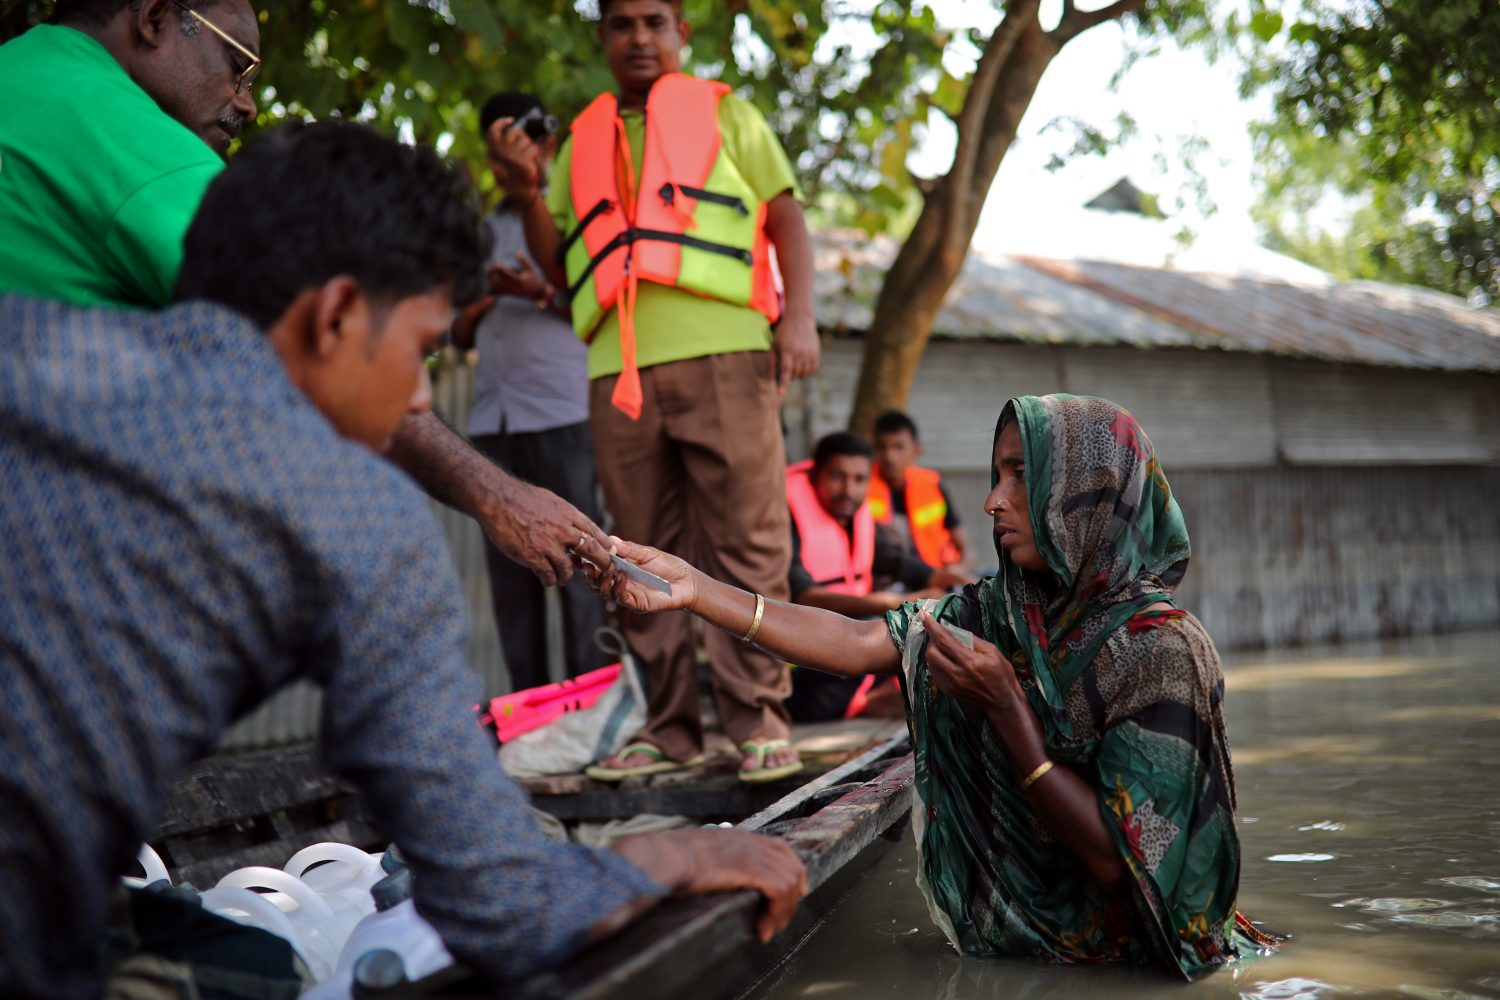 Flood-affected people receives water purifying tablets from volunteers in Jamalpur, Bangladesh, July 21, 2019. REUTERS/Mohammad Ponir Hossain